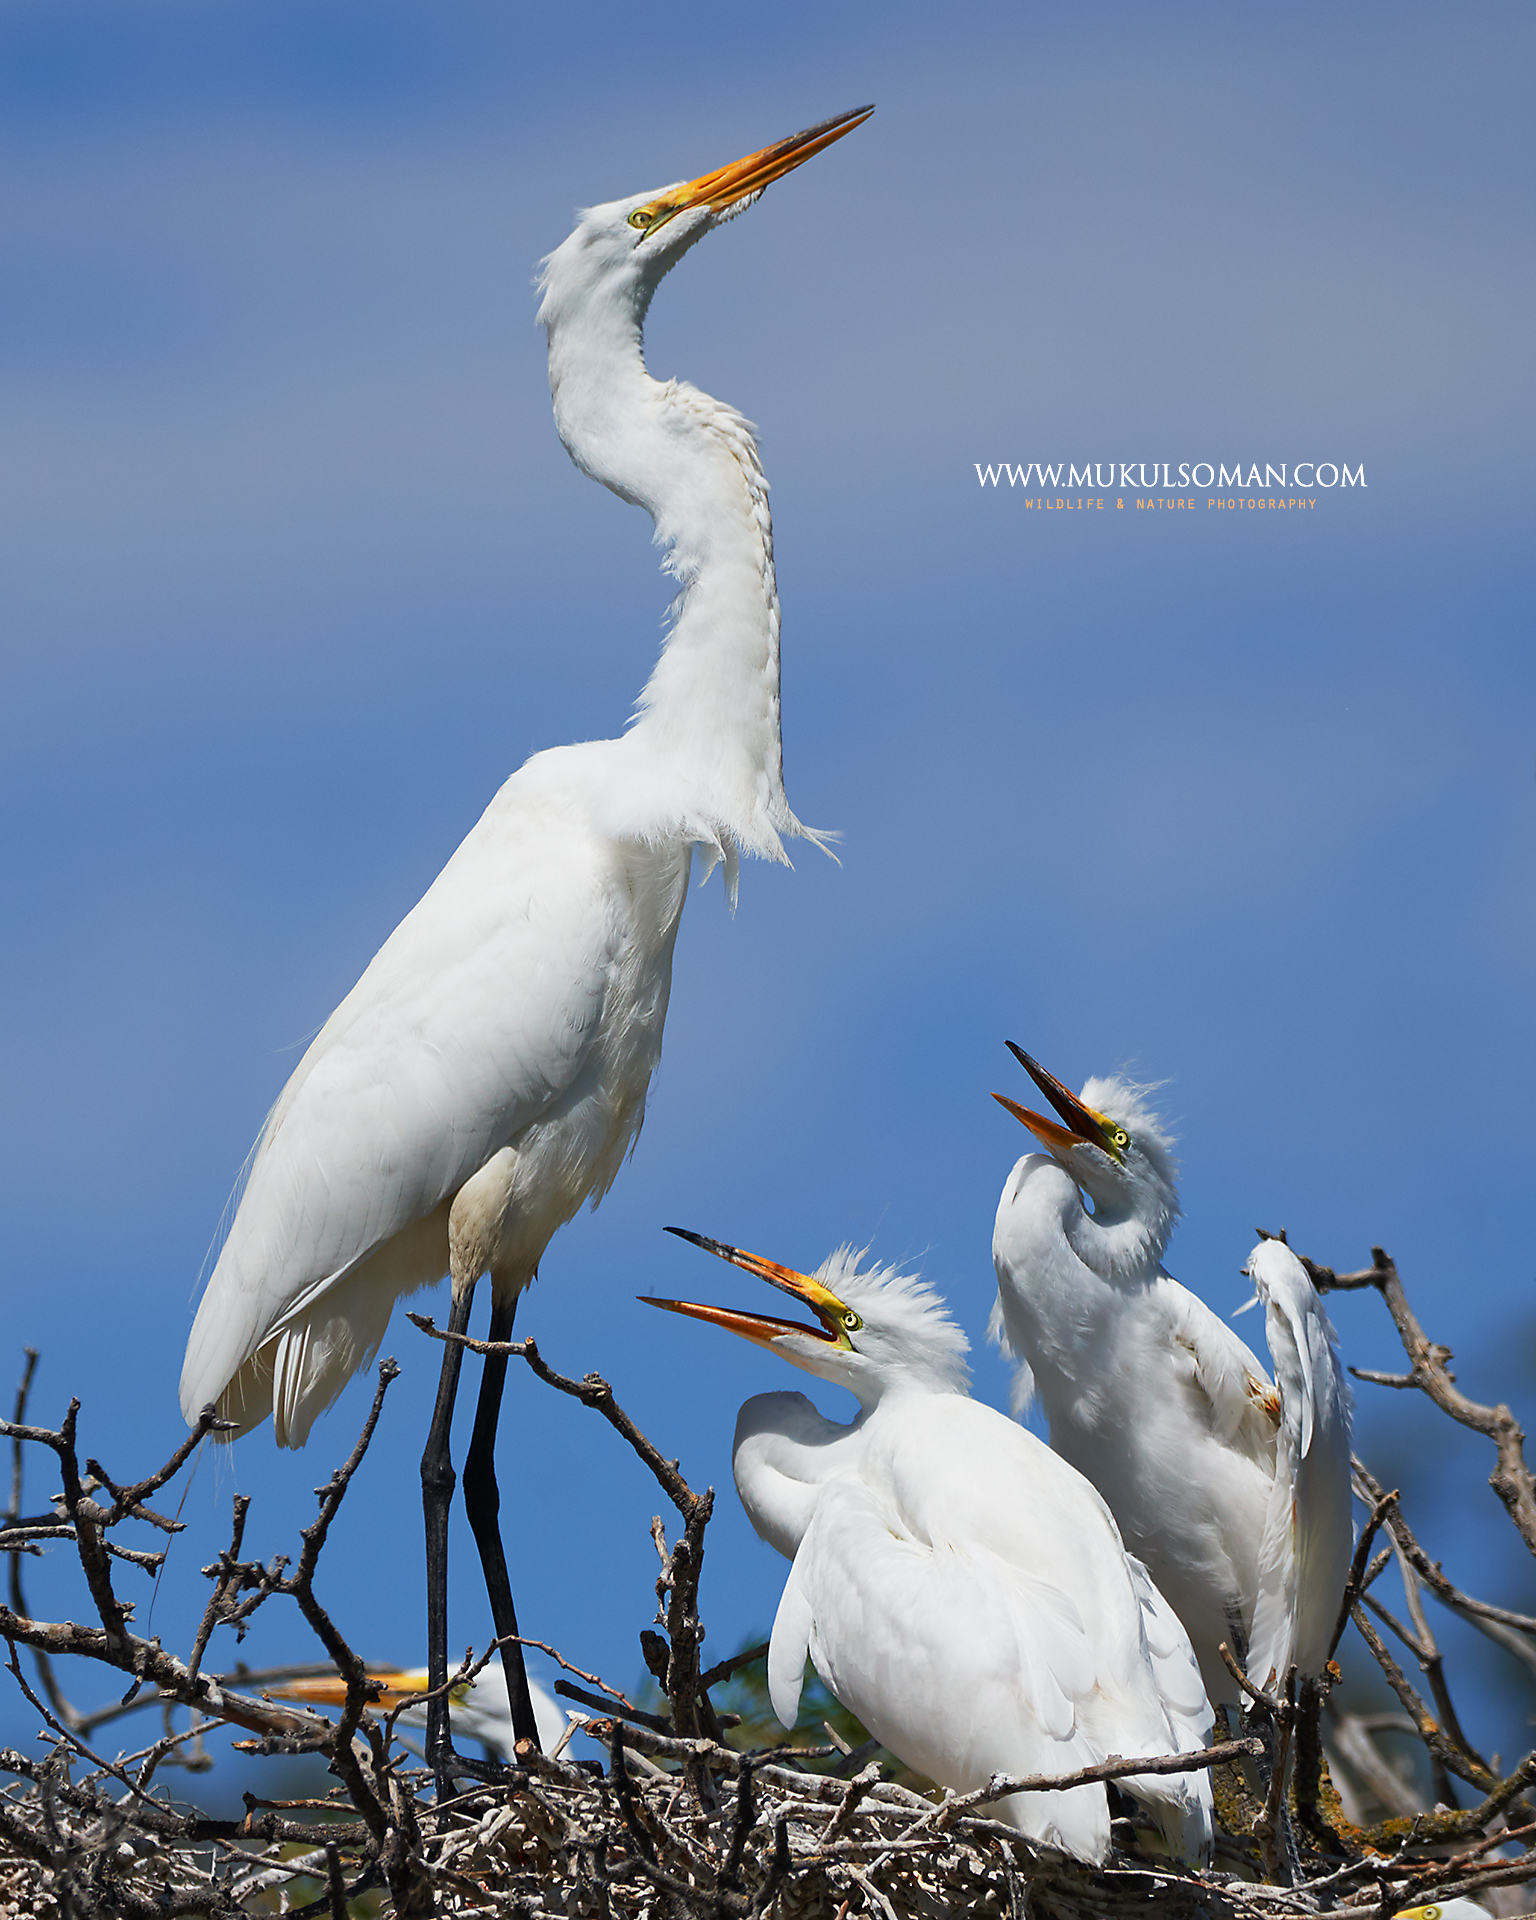 Great Egret mom and chicks.  Camera : Nikon D500 | Focal Length : 600mm | Exposure : 1/2000 | Aperture : f/9 | ISO : 400